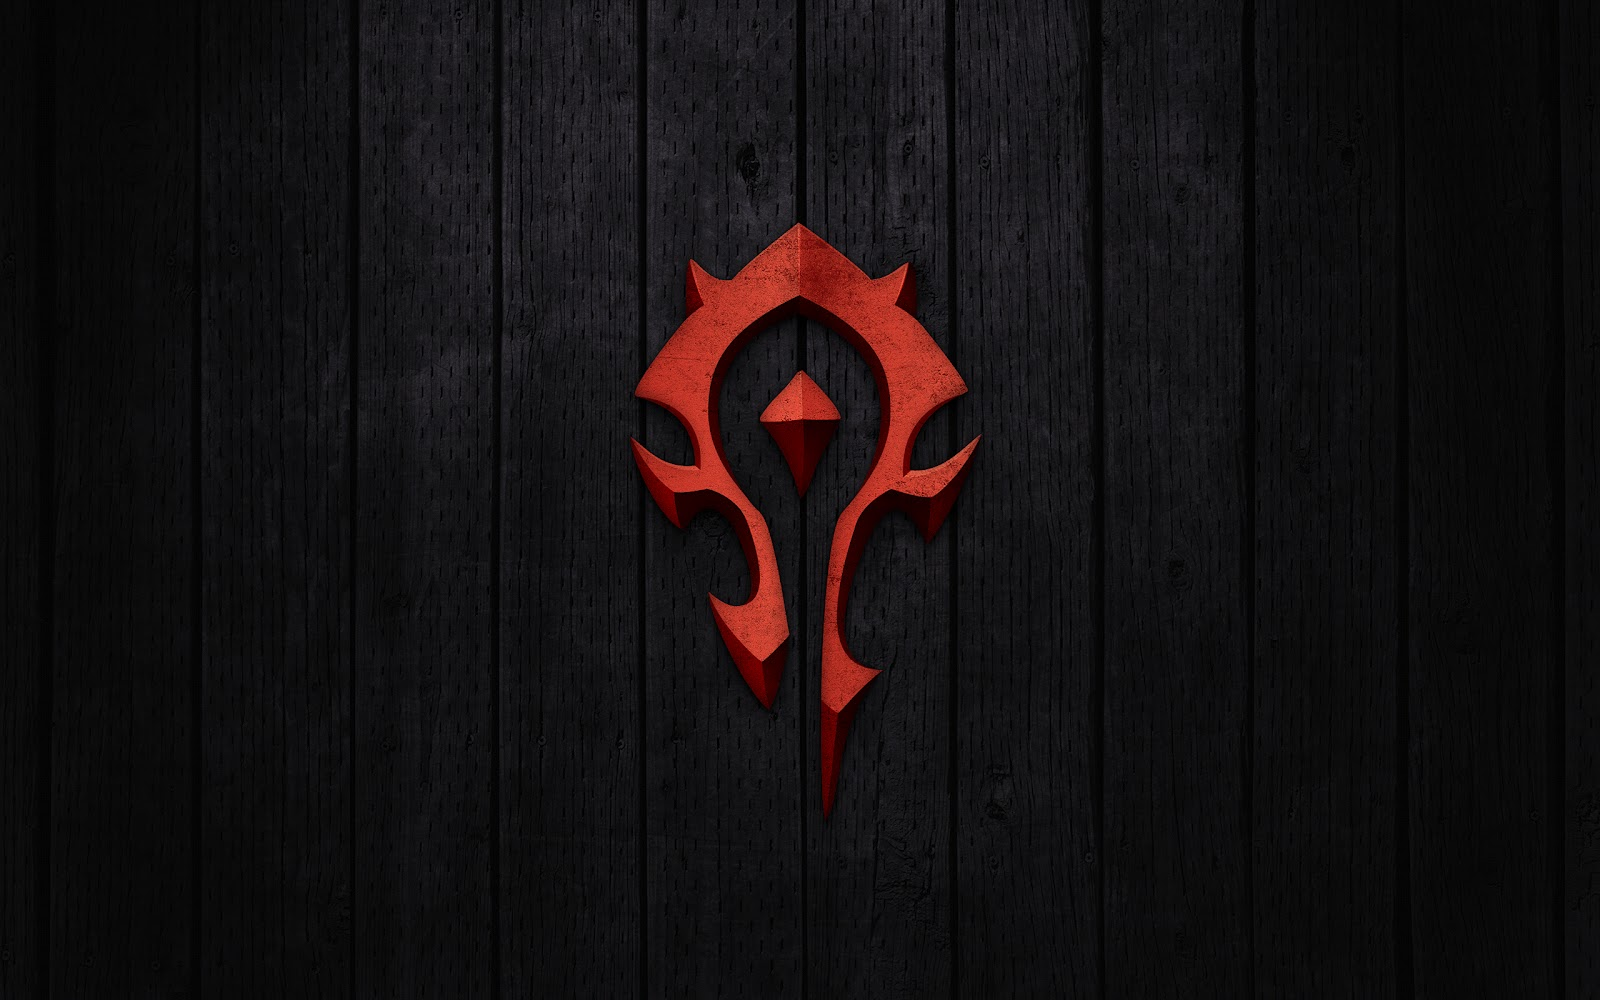 world of warcraft horde trademark symbol logo wow wallpaper background ...